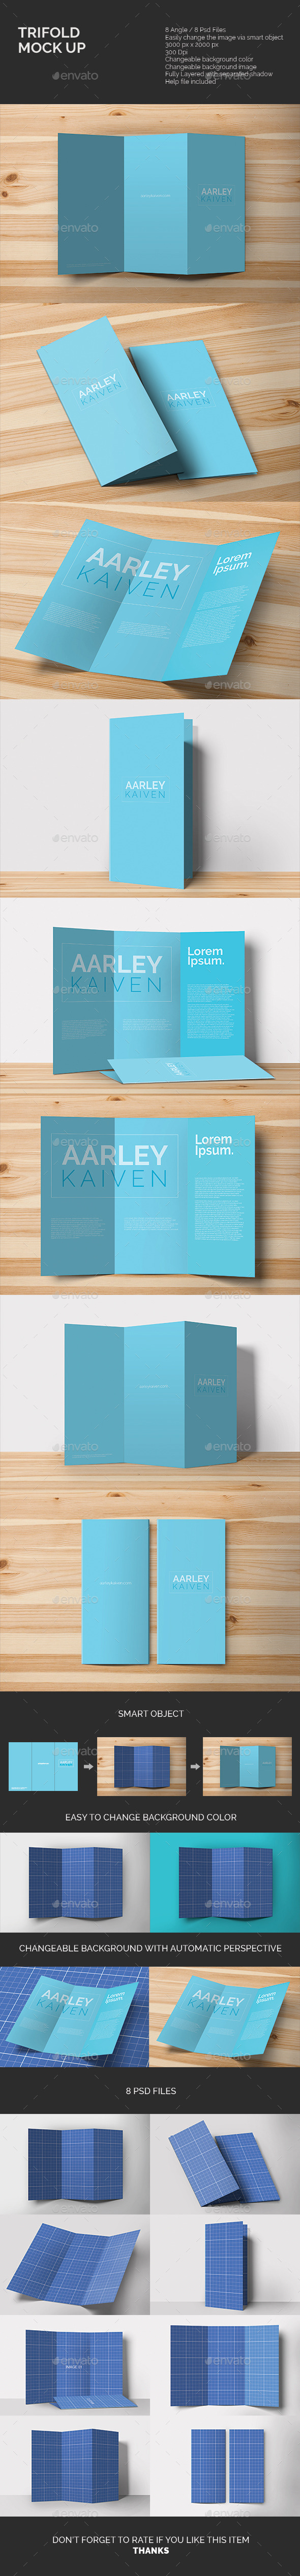 Trifold Mock-up - Miscellaneous Print